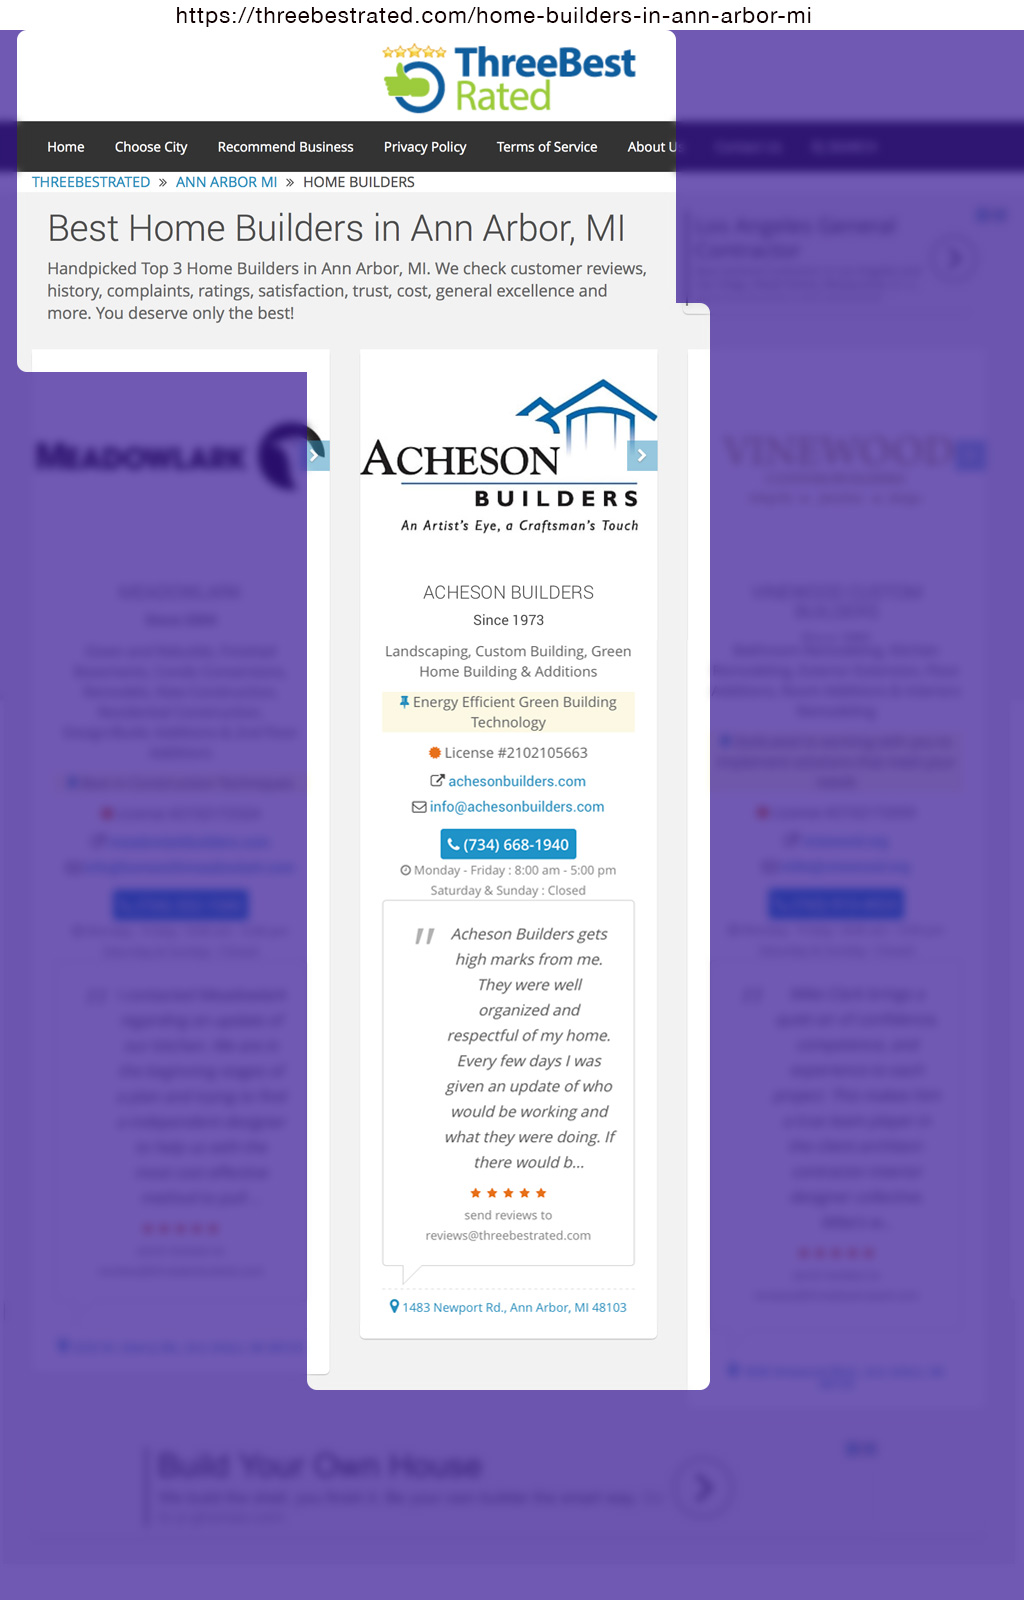 One of three best rated home builders acheson builders Best home builder websites